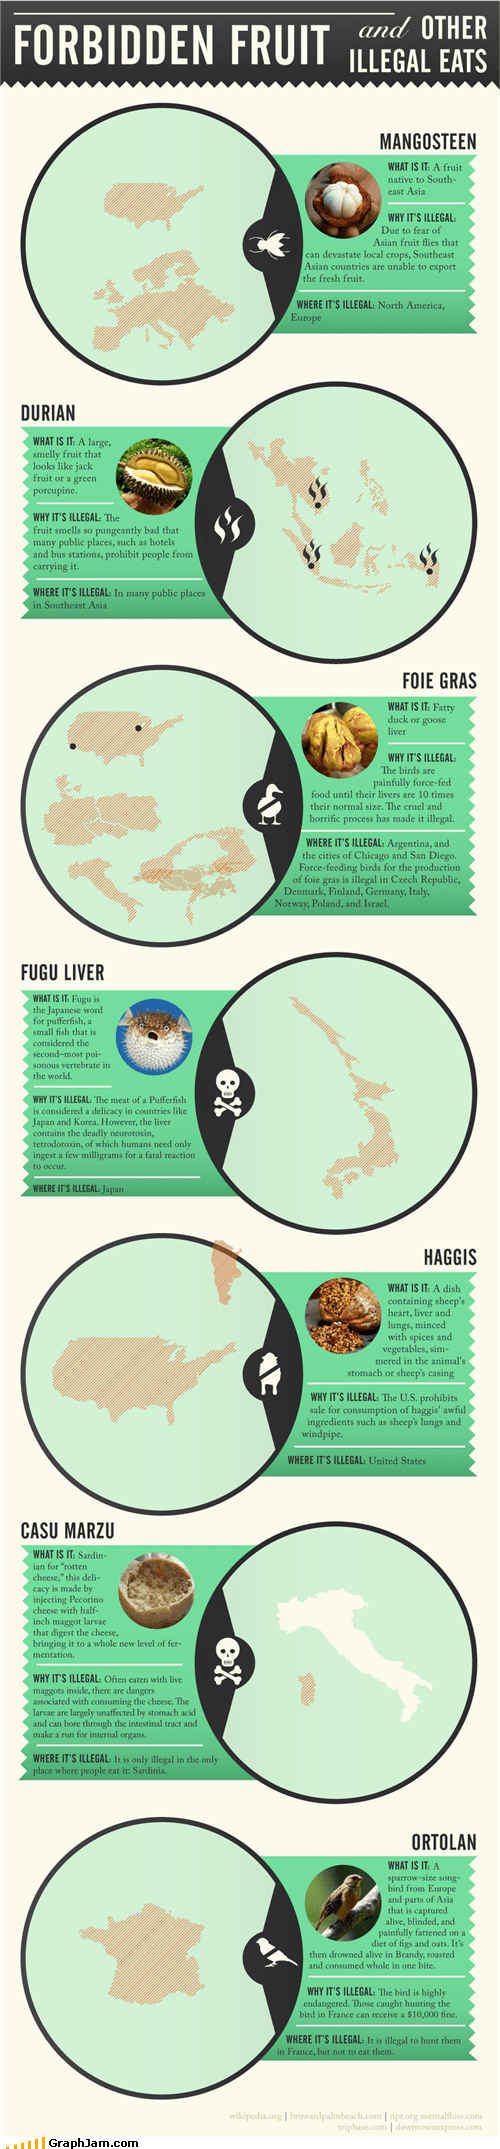 food fruit illegal infographic - 5193212672